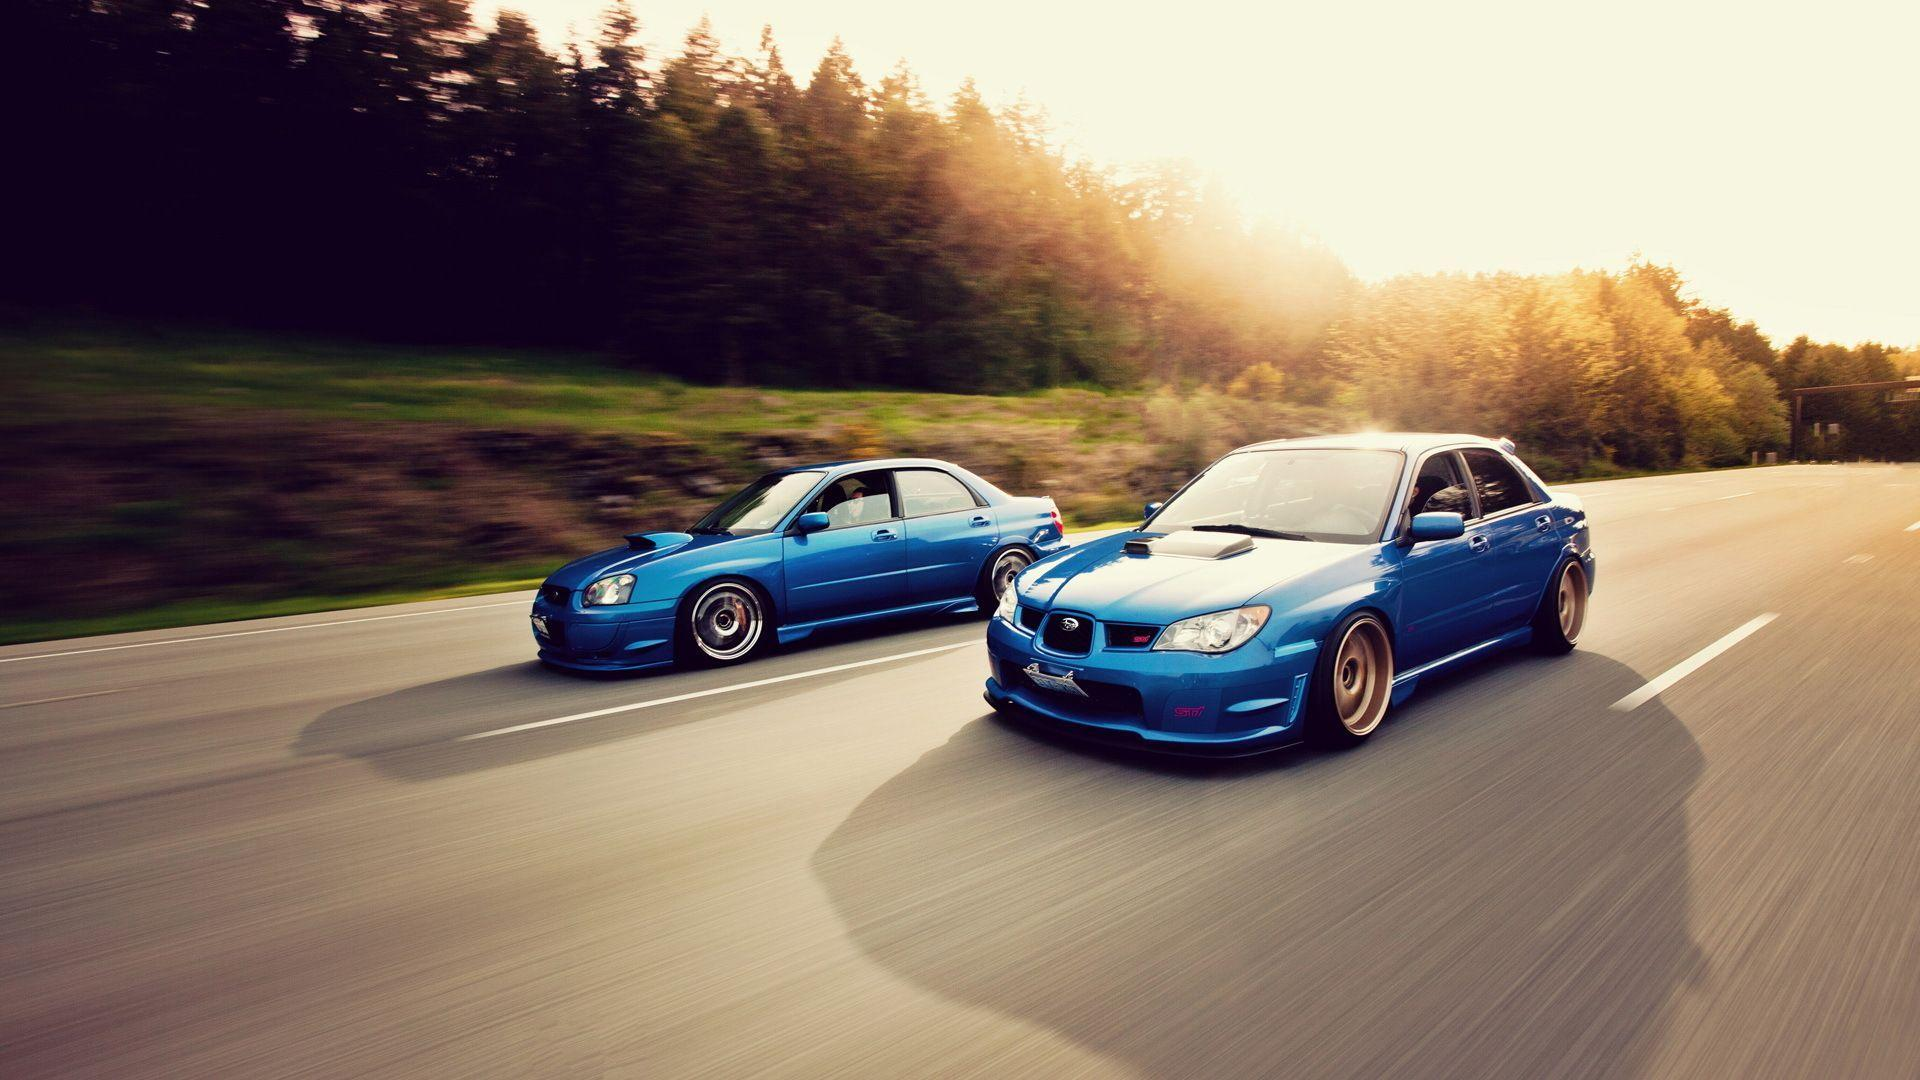 View Of Subaru Impreza Wallpapers : Hd Car Wallpapers | Subaru ...